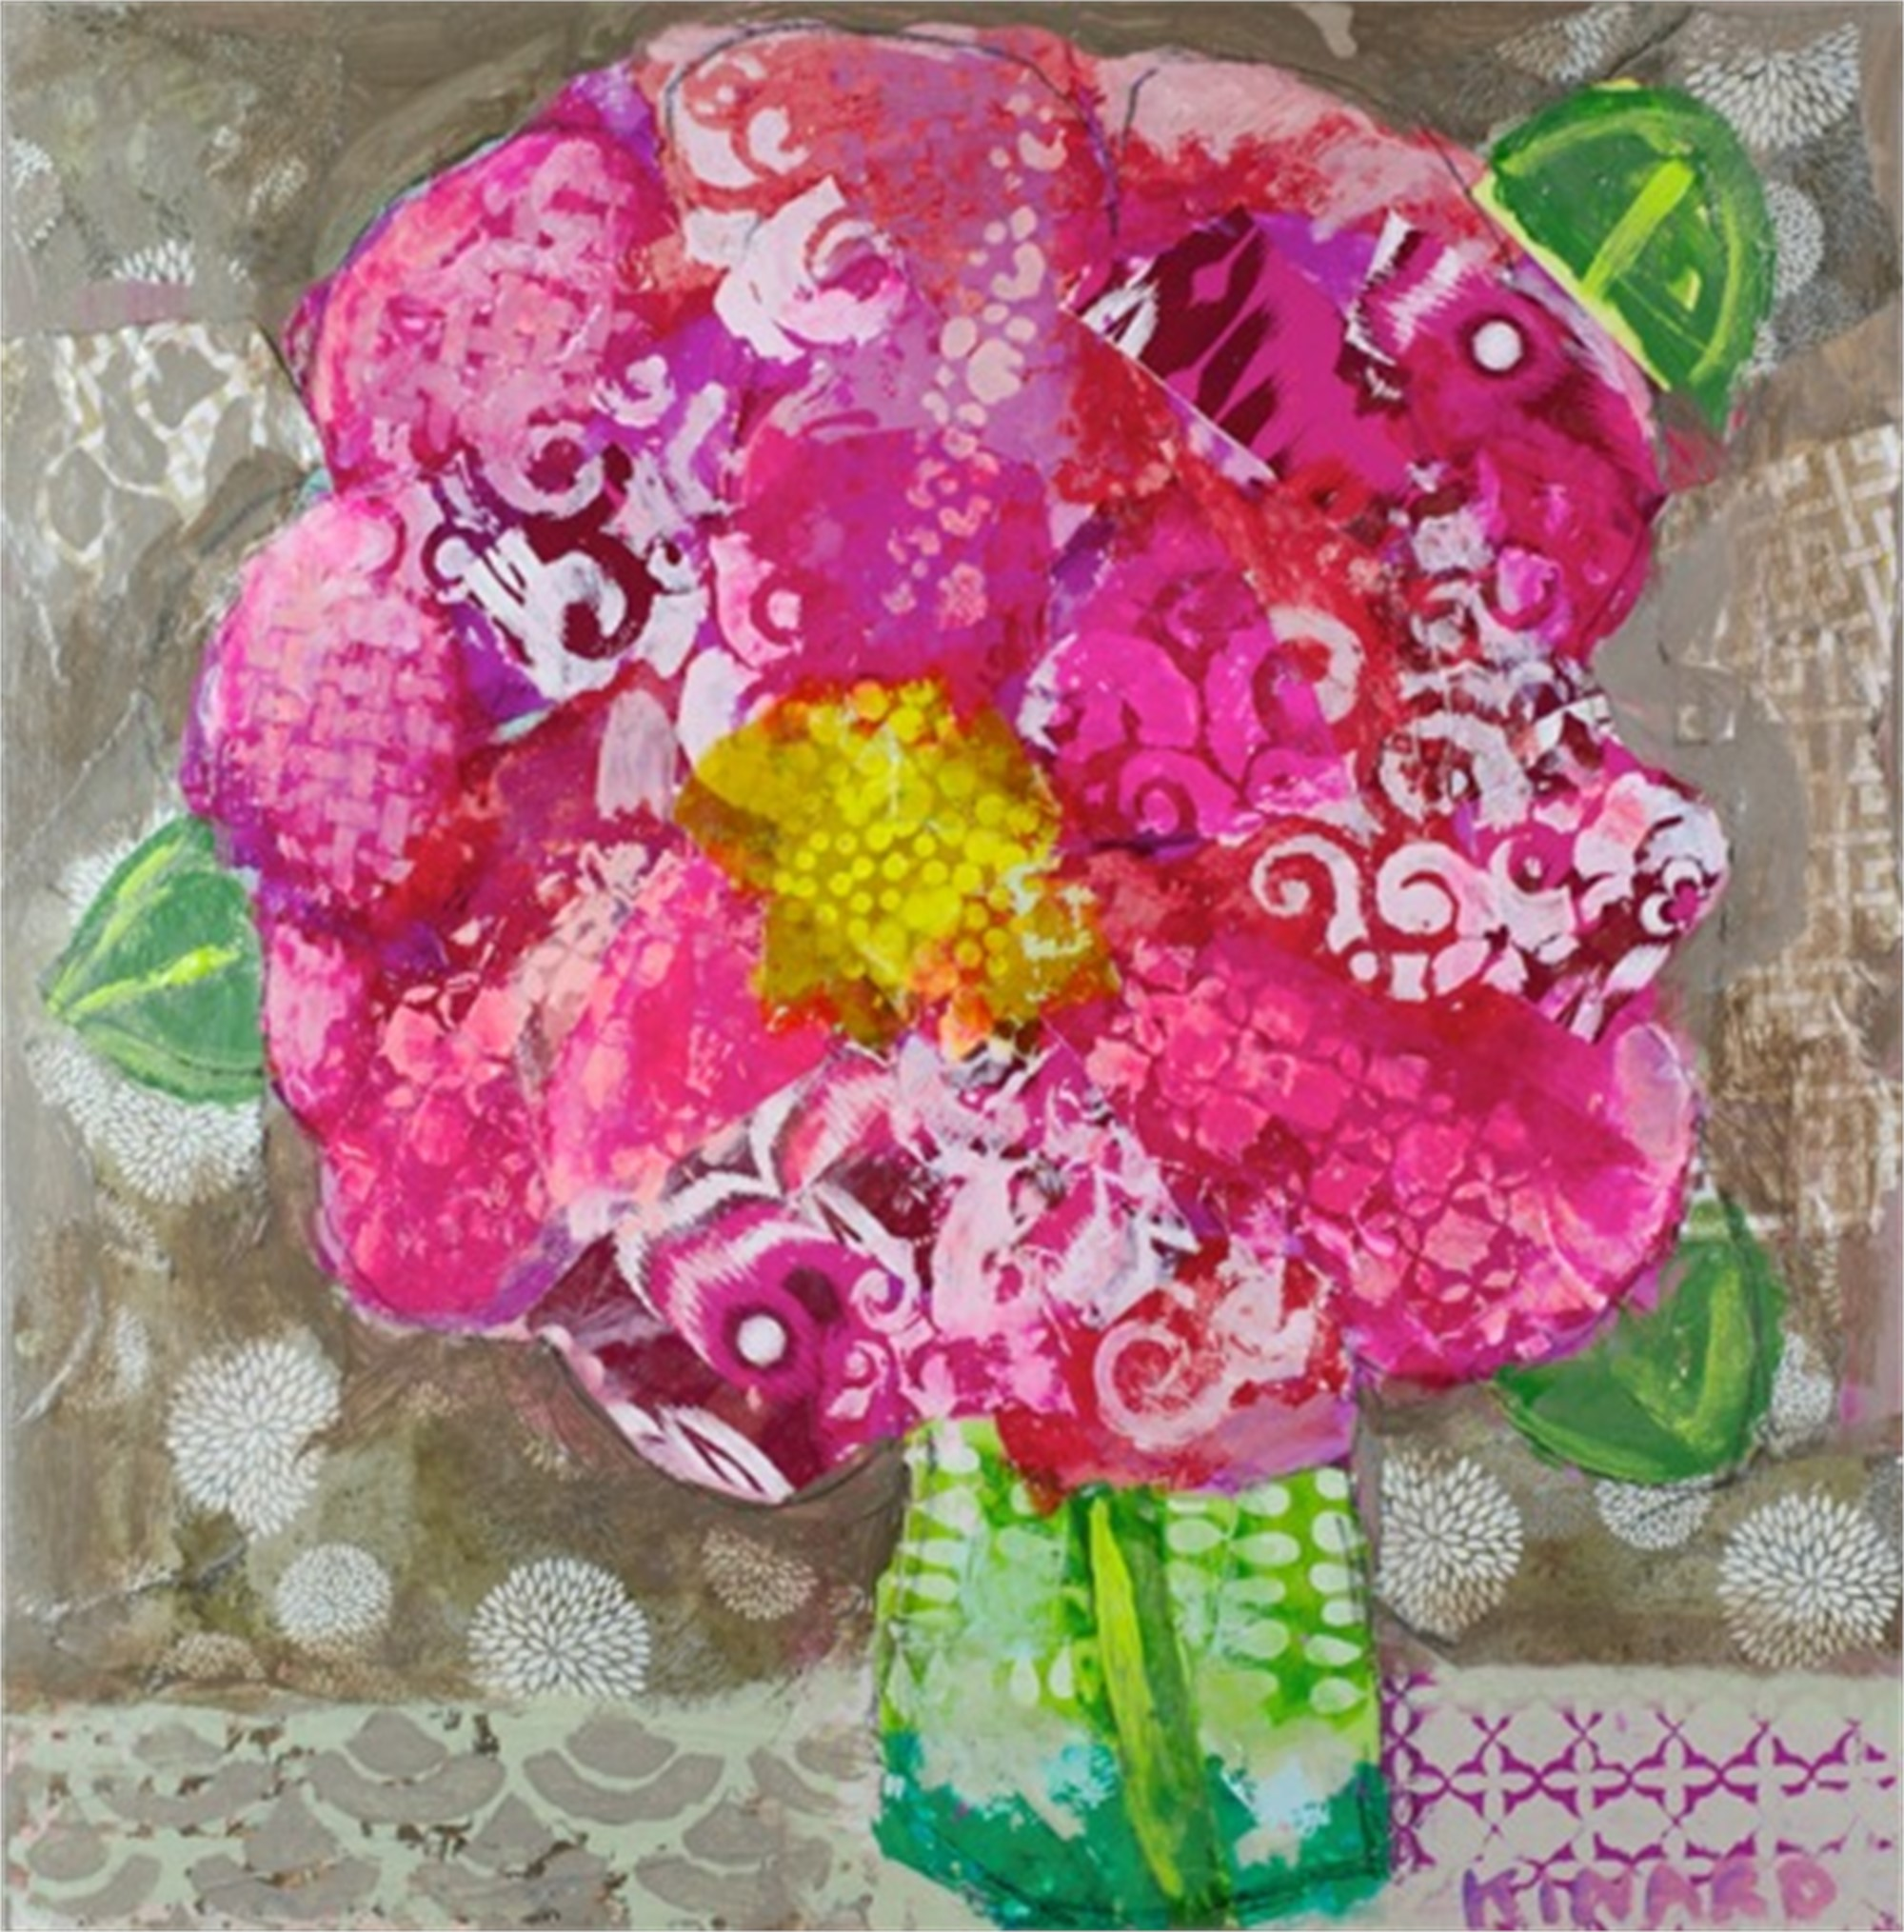 Flowers From Miss Fluffie by Christy Kinard